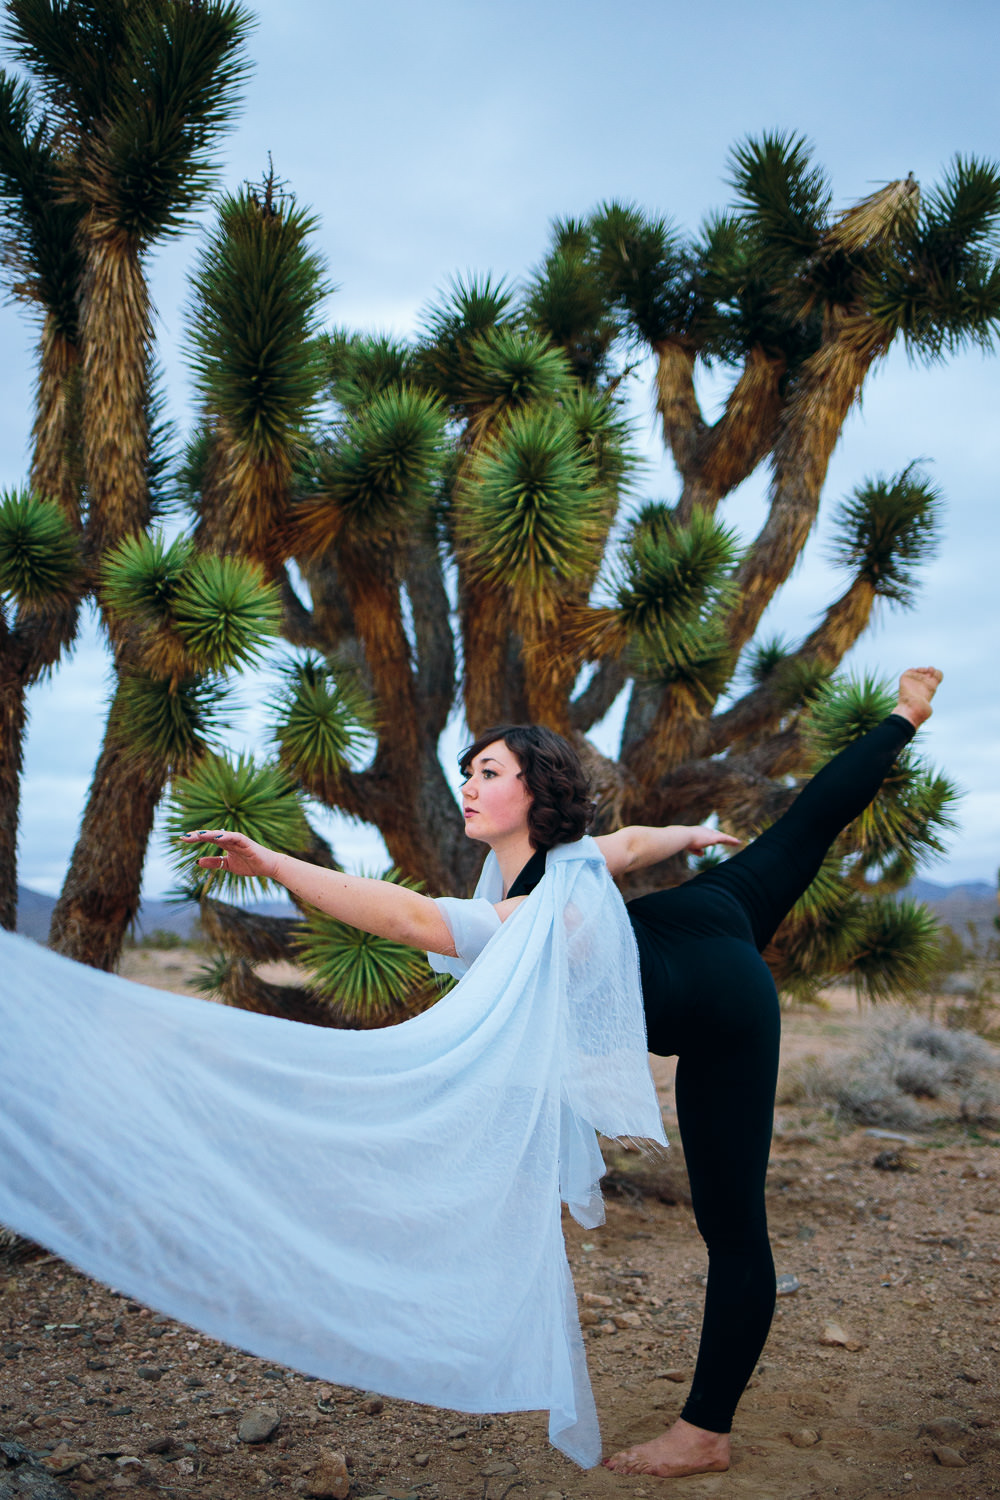 Joshua Tree ribbon dancer Southern Utah Adventure photographer hybrid film and digital